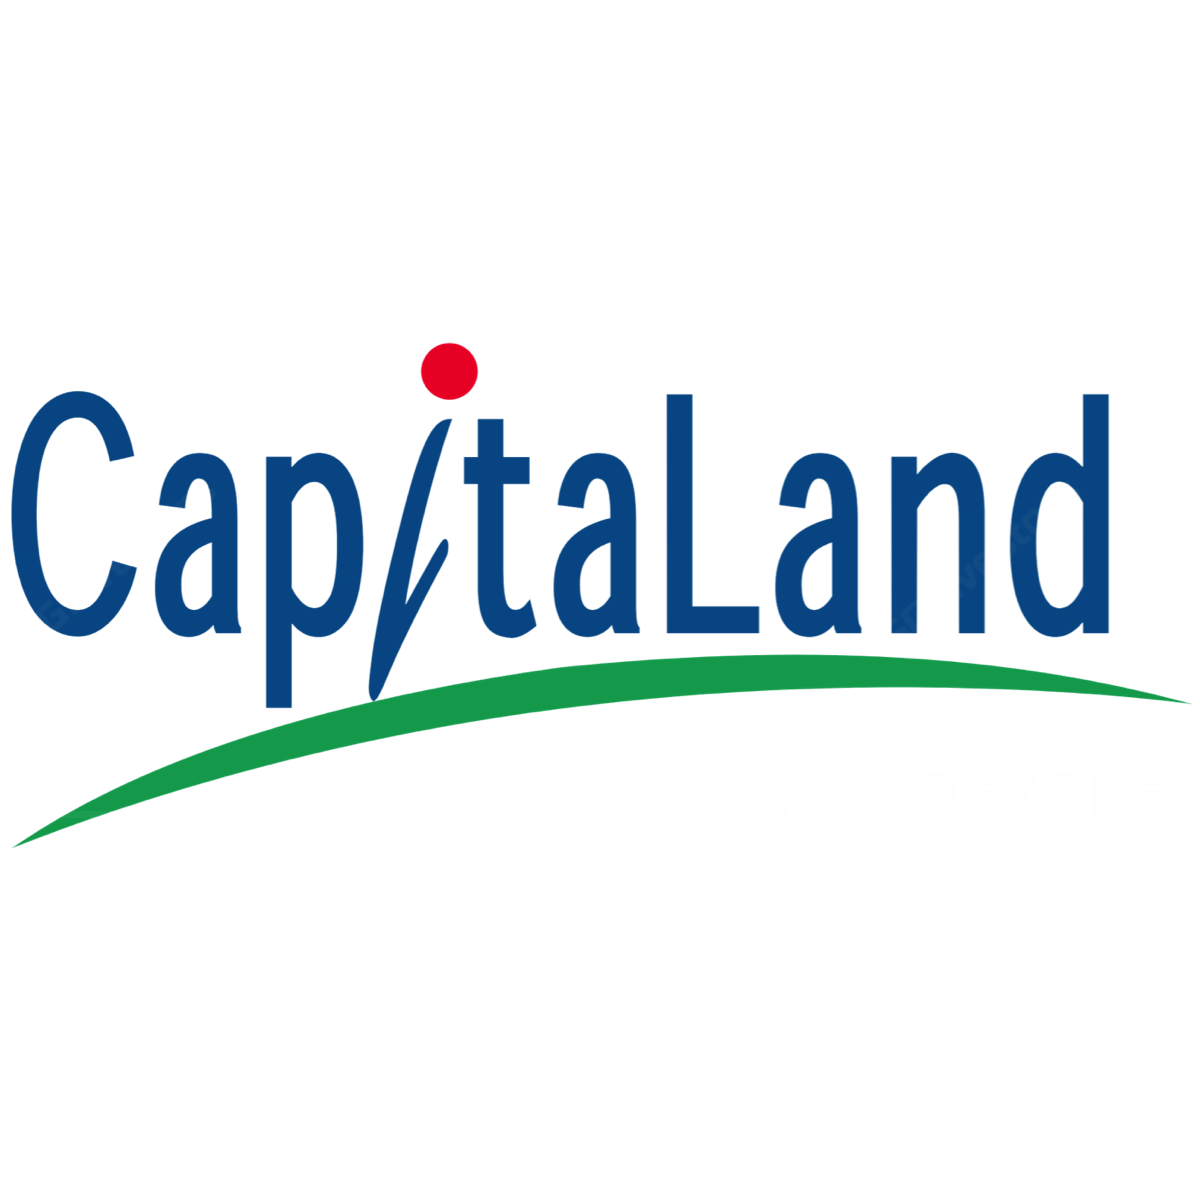 CapitaLand (CAPL SP) - DBS Vickers 2017-08-04: Setting The Stage For A Banner Year